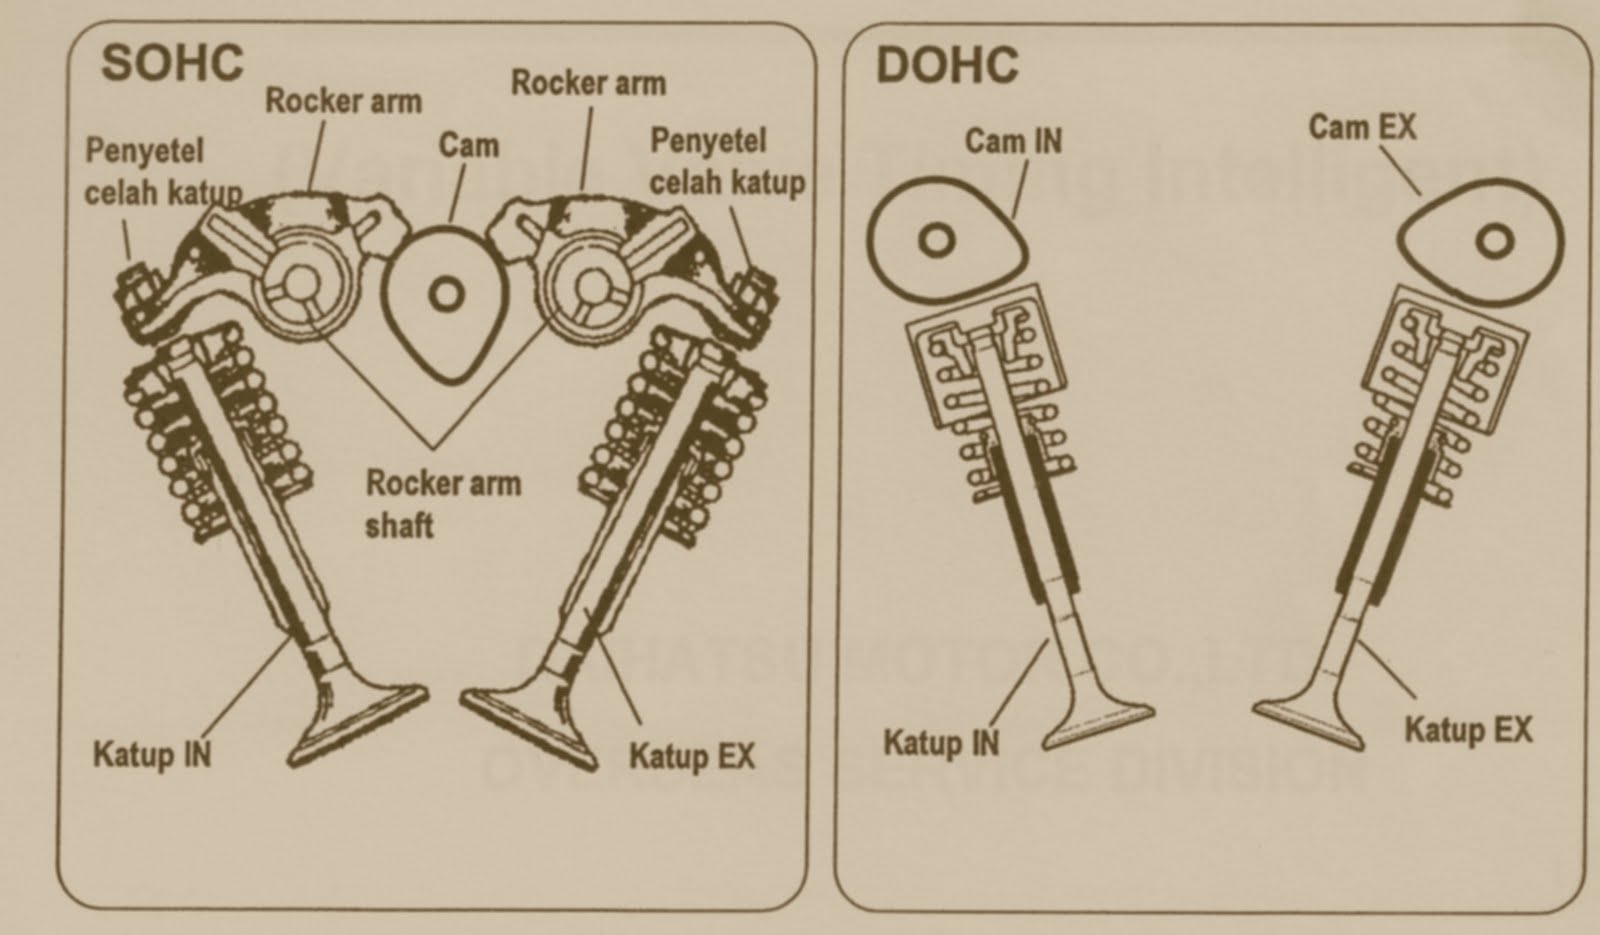 Diagram Of Dohc Engine Modern Design Wiring Cross Section Vs Sohc Engines All You Need To Know News Articles Rh Pakwheels Com Harley Xg 2018